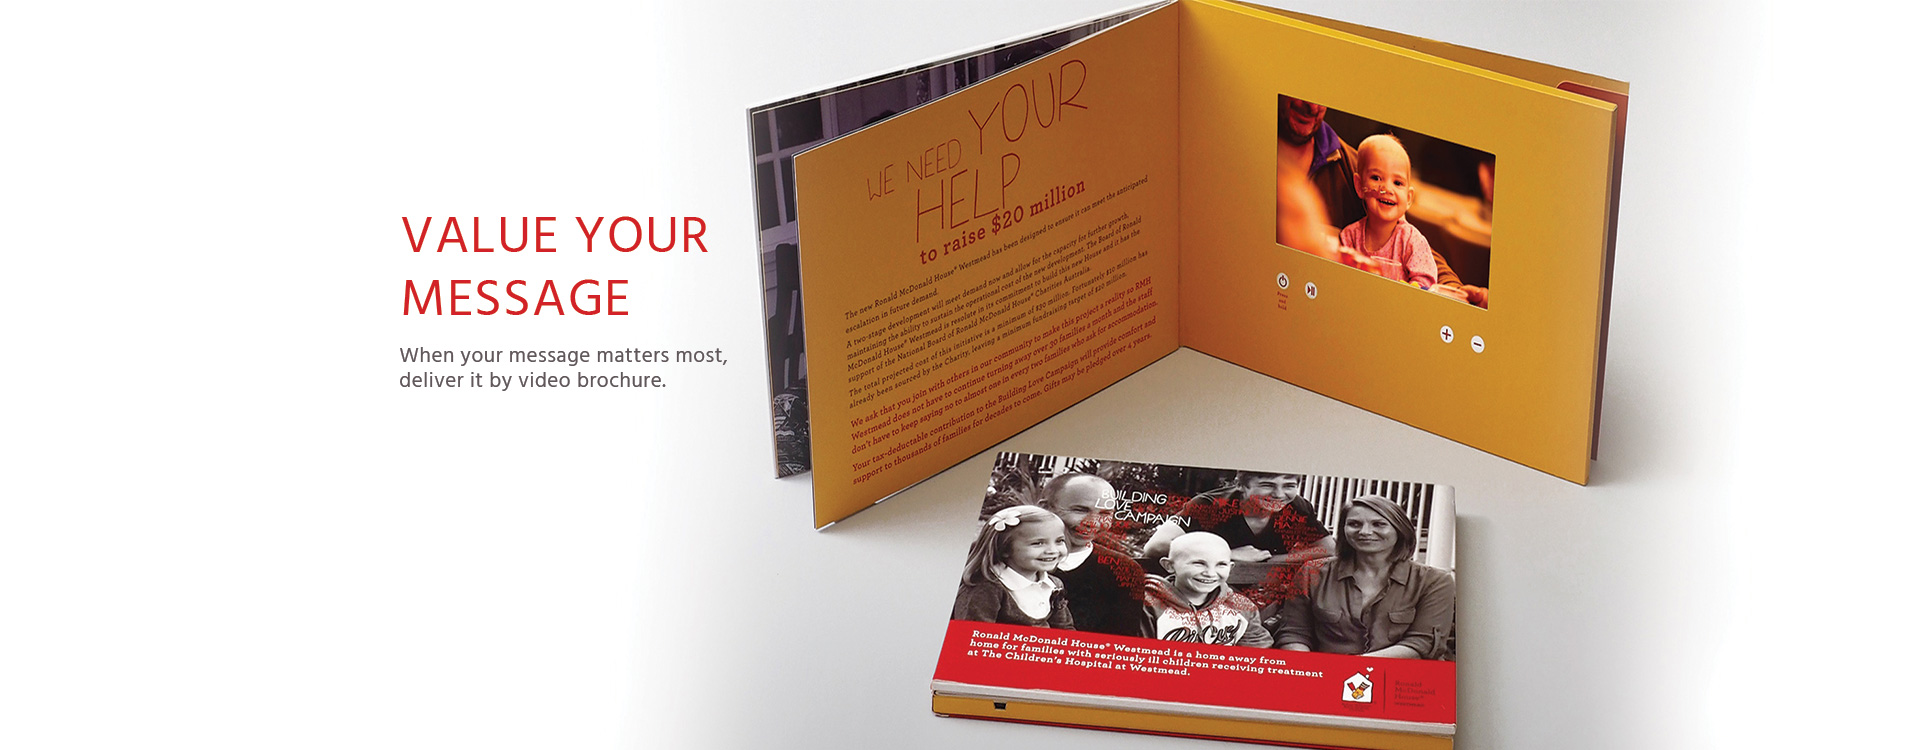 Video Brochures and Books with Expert Consultants